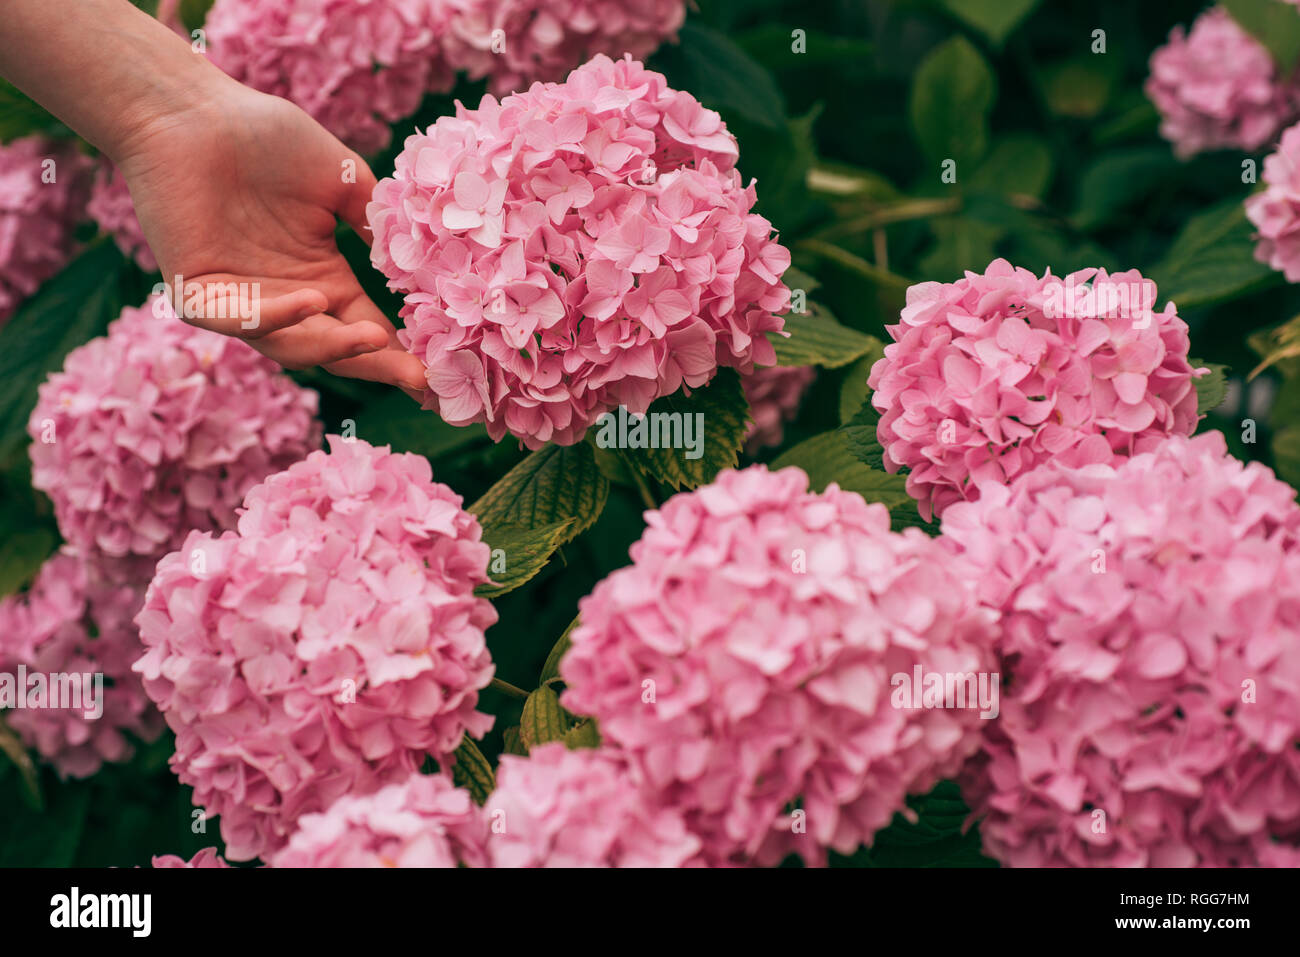 woman care of flowers in garden. gardener with flowers. hydrangea. Spring and summer. Flower care and watering. soils and fertilizers. Greenhouse - Stock Image